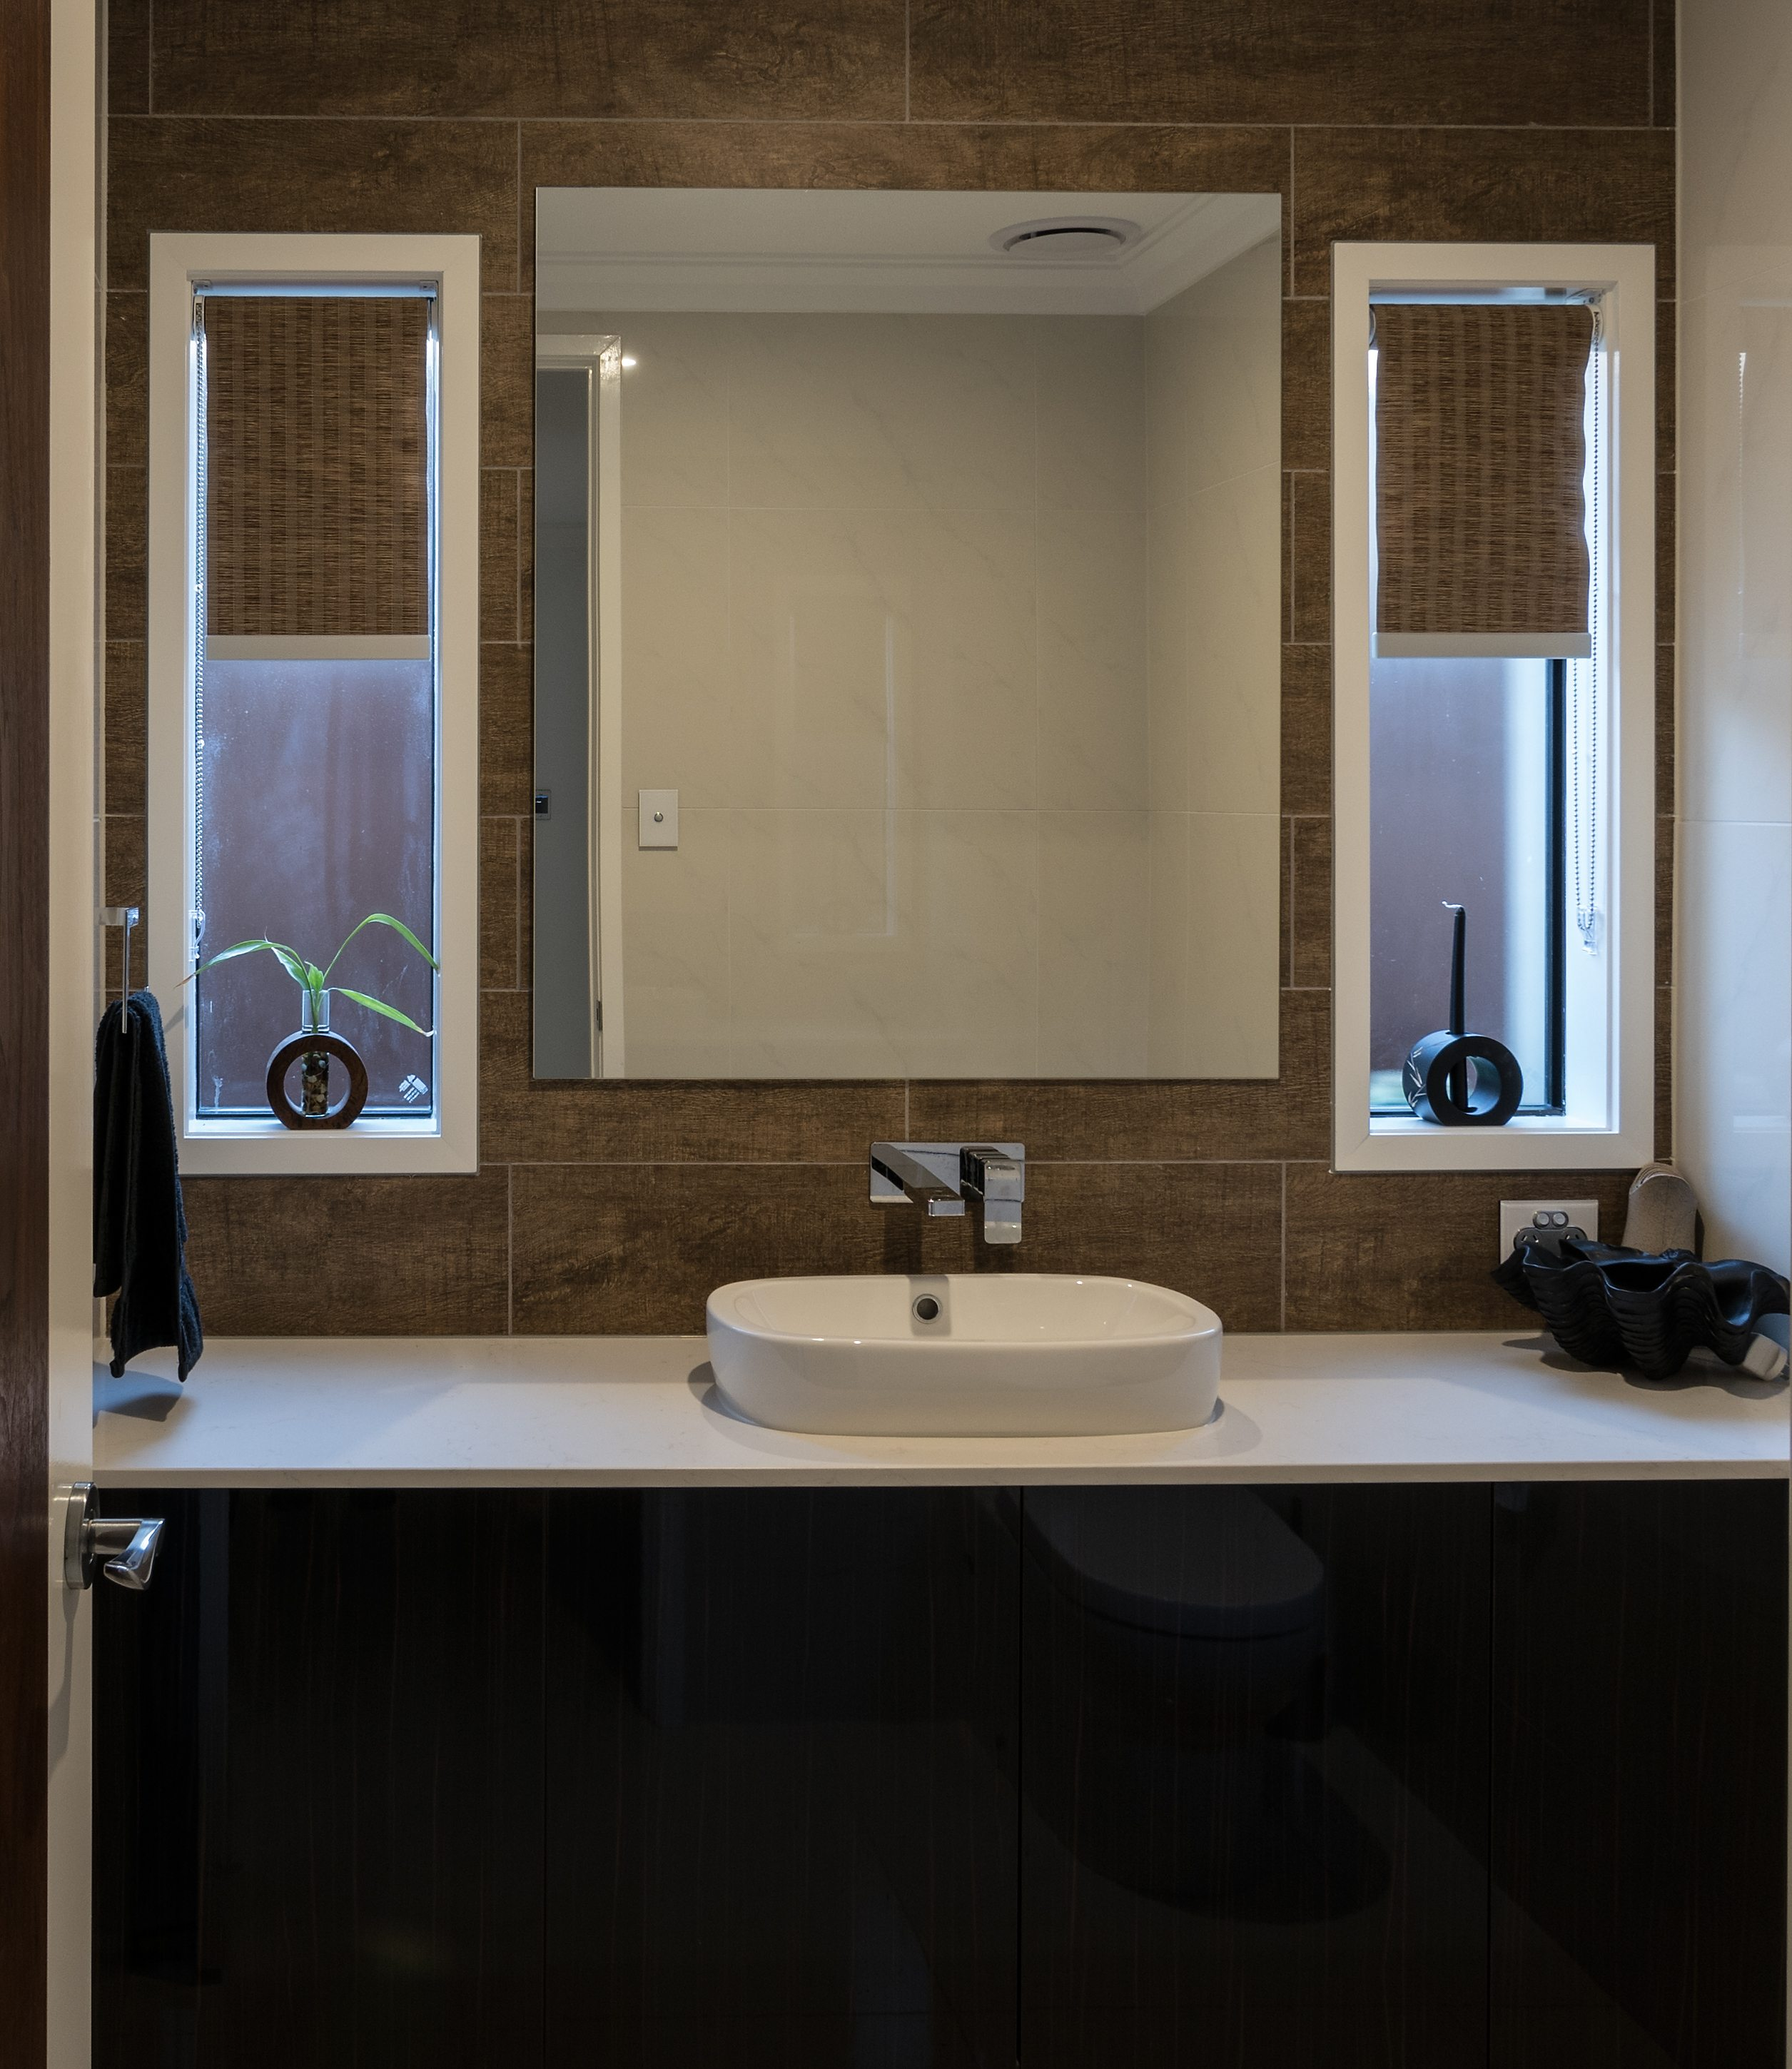 Textured double blind in bathroom